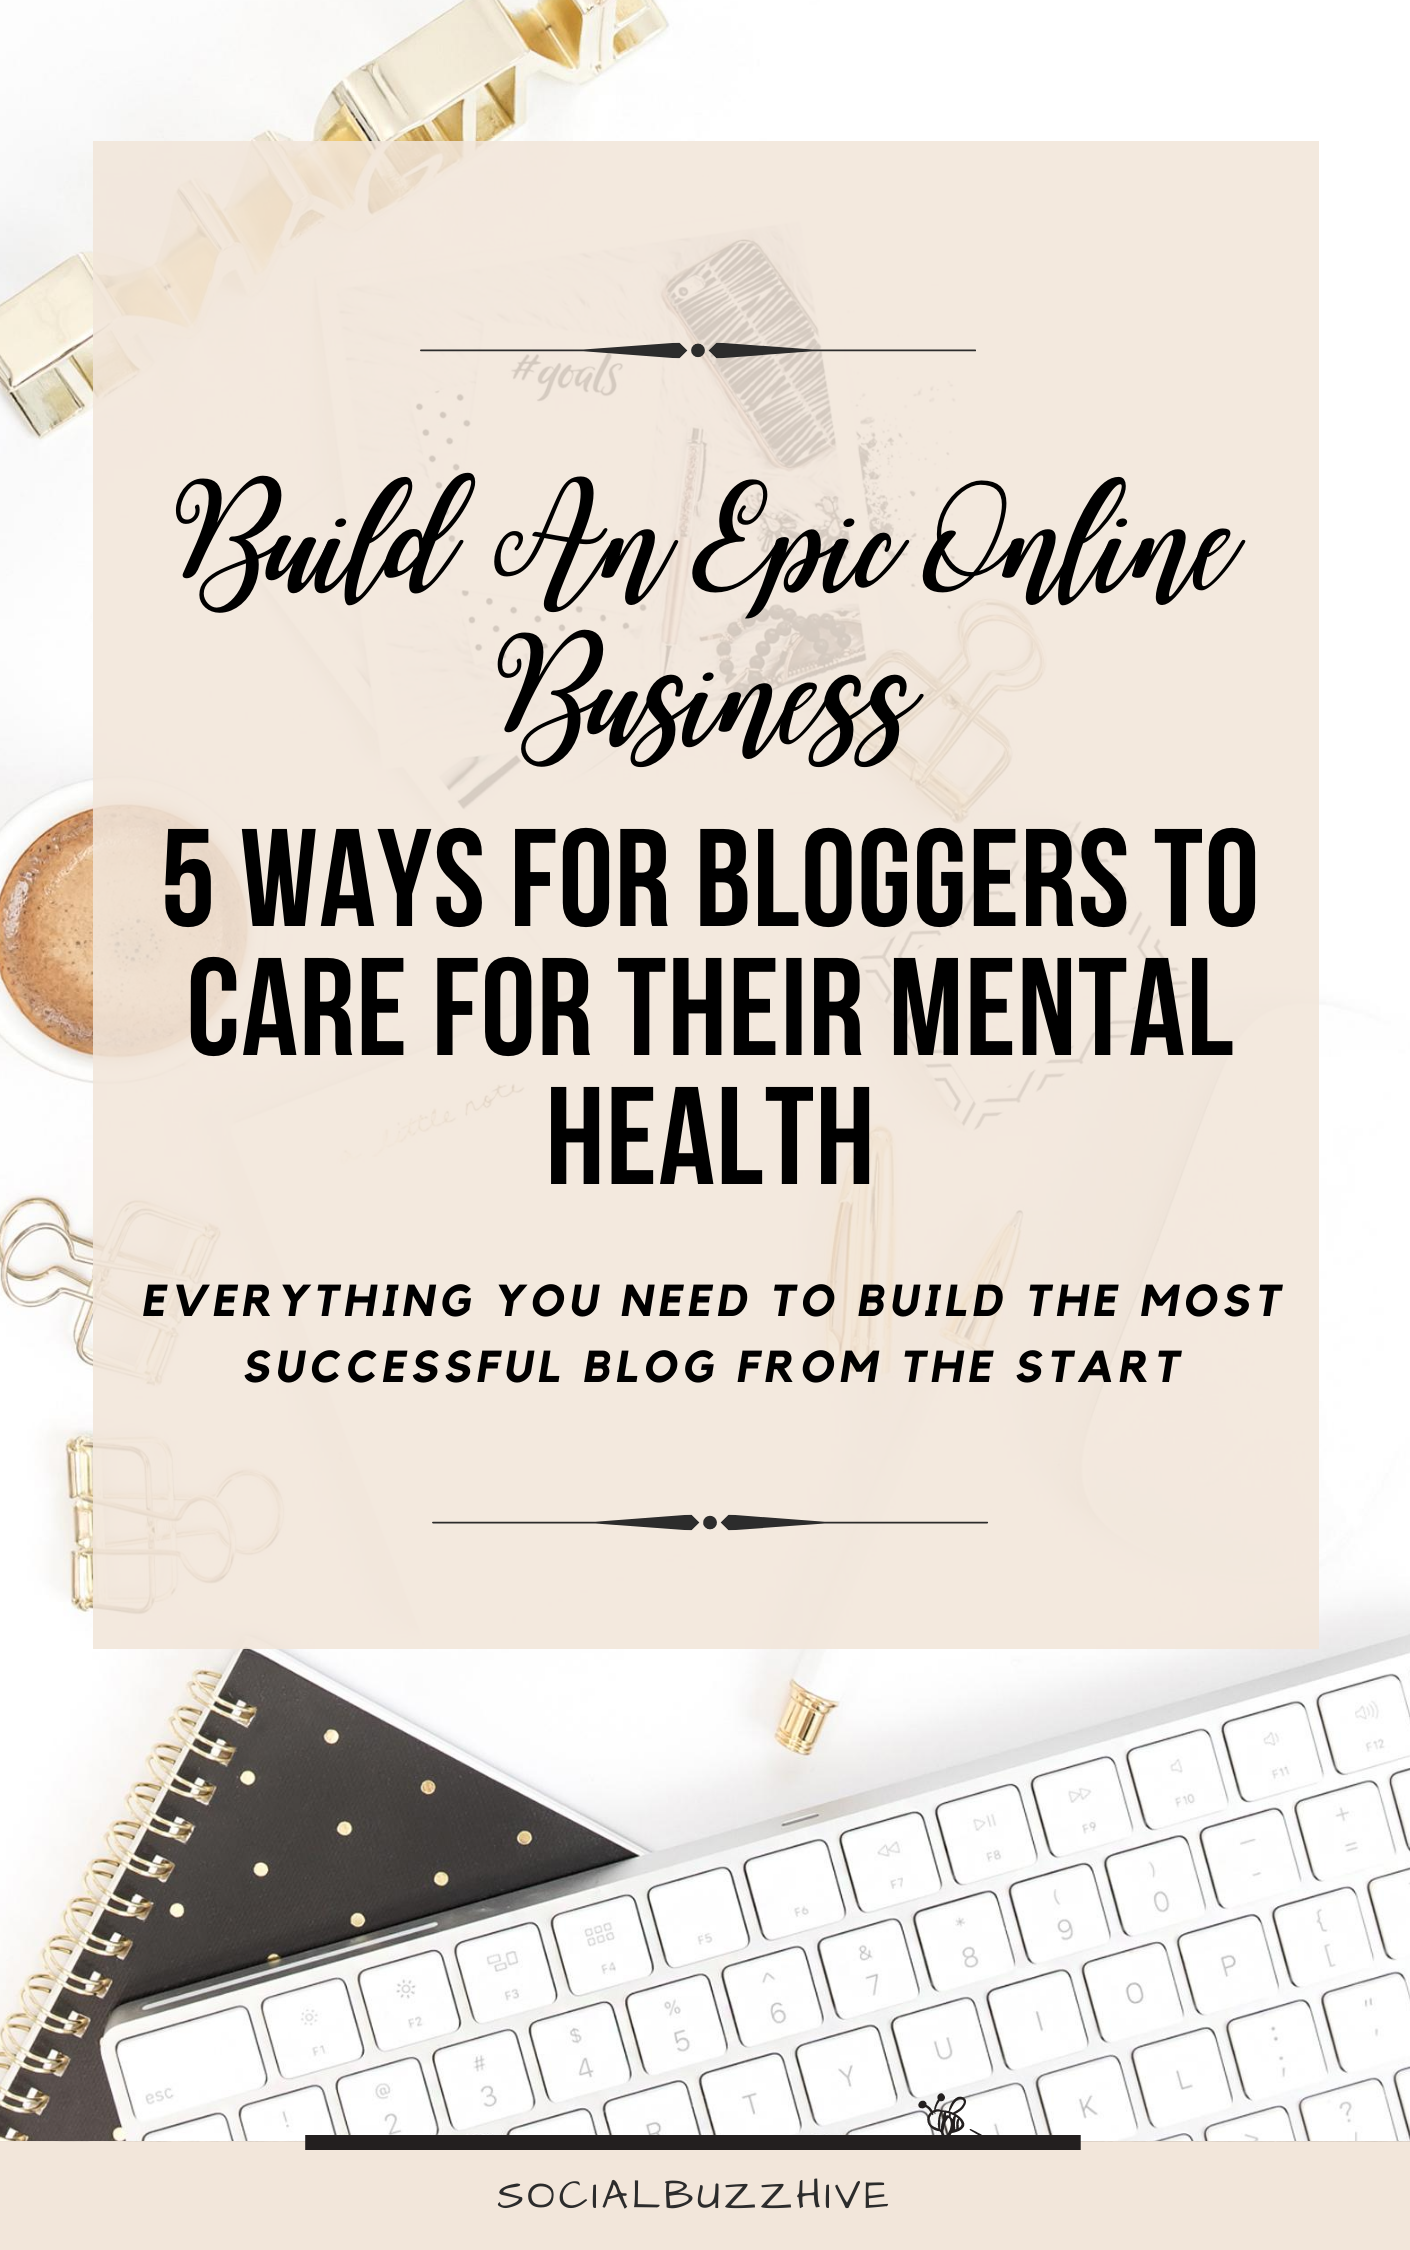 5 ways bloggers care for their mental health